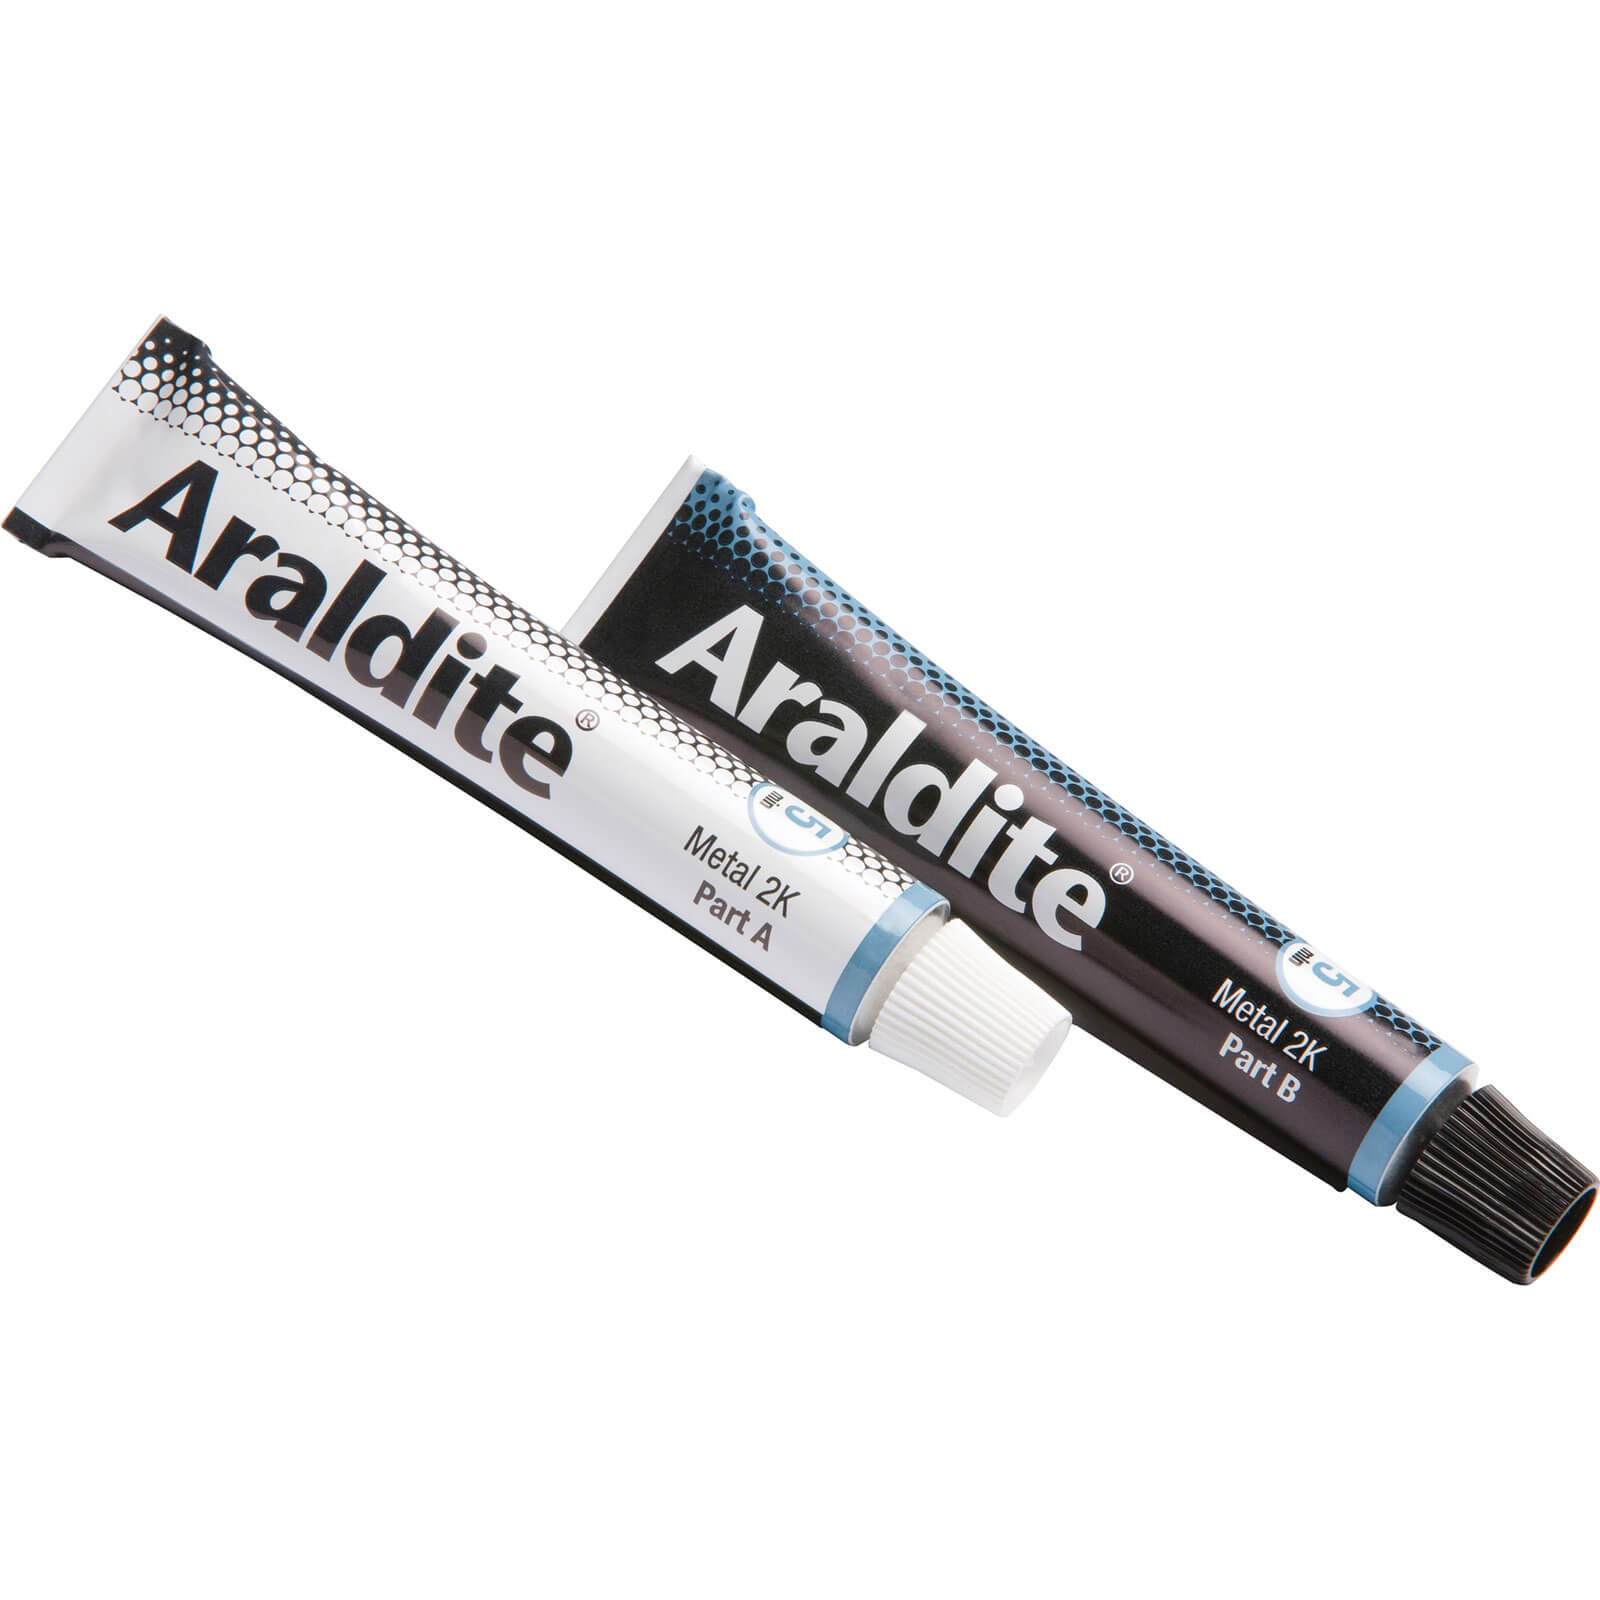 Araldite Steel Two Component Adhesive 2 x 15ml Tubes